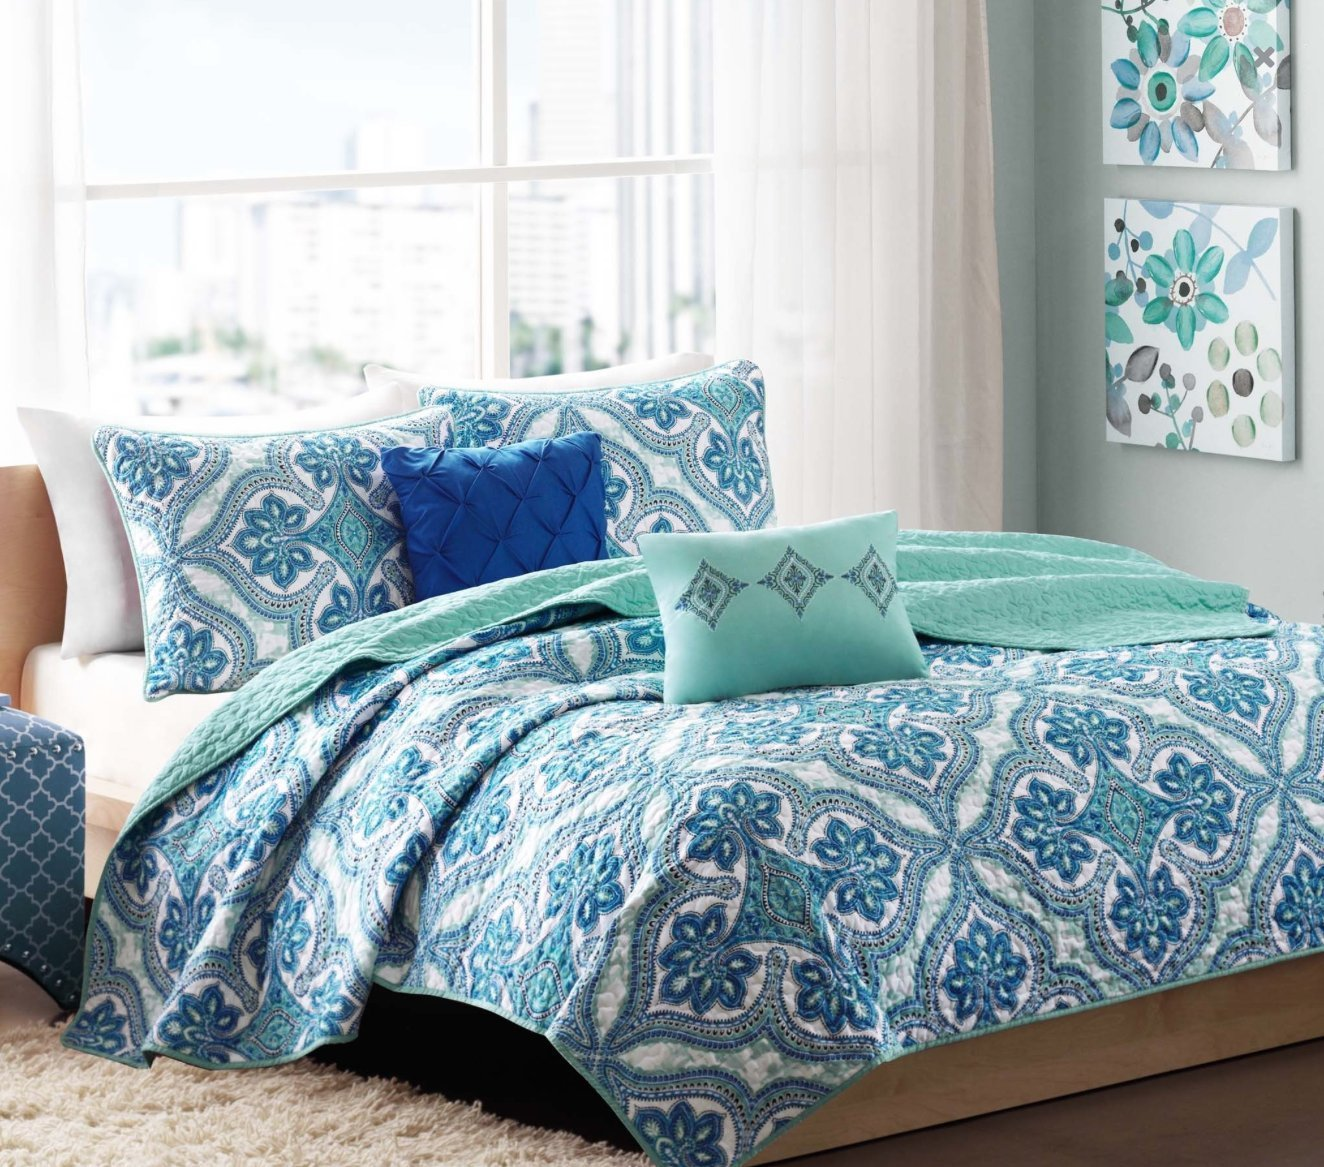 quilt comforter amazon and printed trusty shams queen with grey pillow decor quilts comforters uezwvtb com set